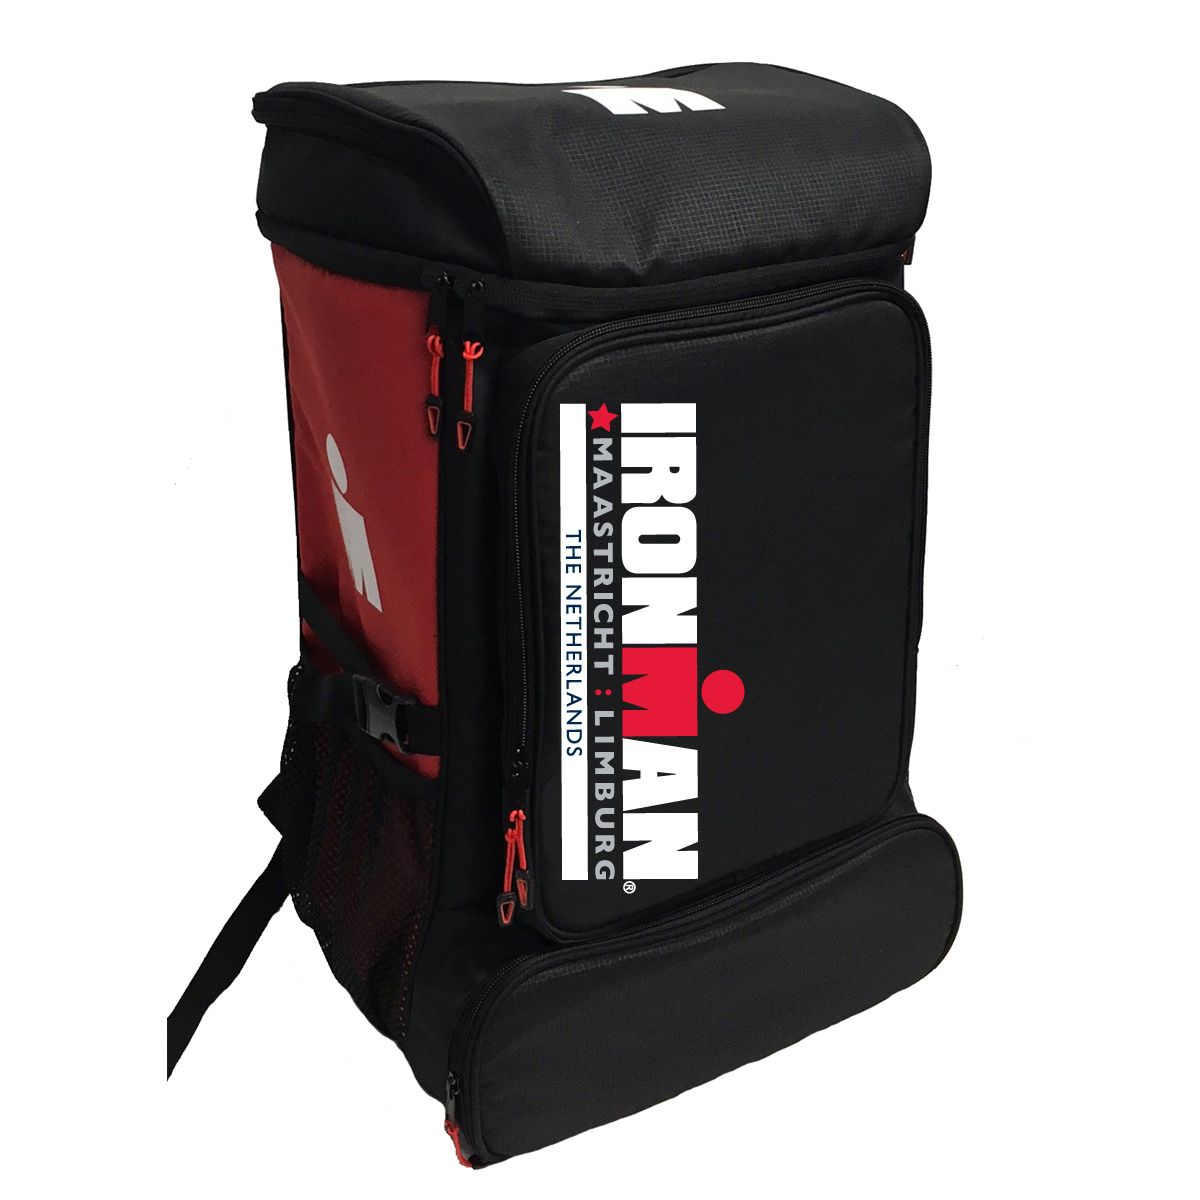 IRONMAN Maastricht-Limburg 2019 Event Backpack